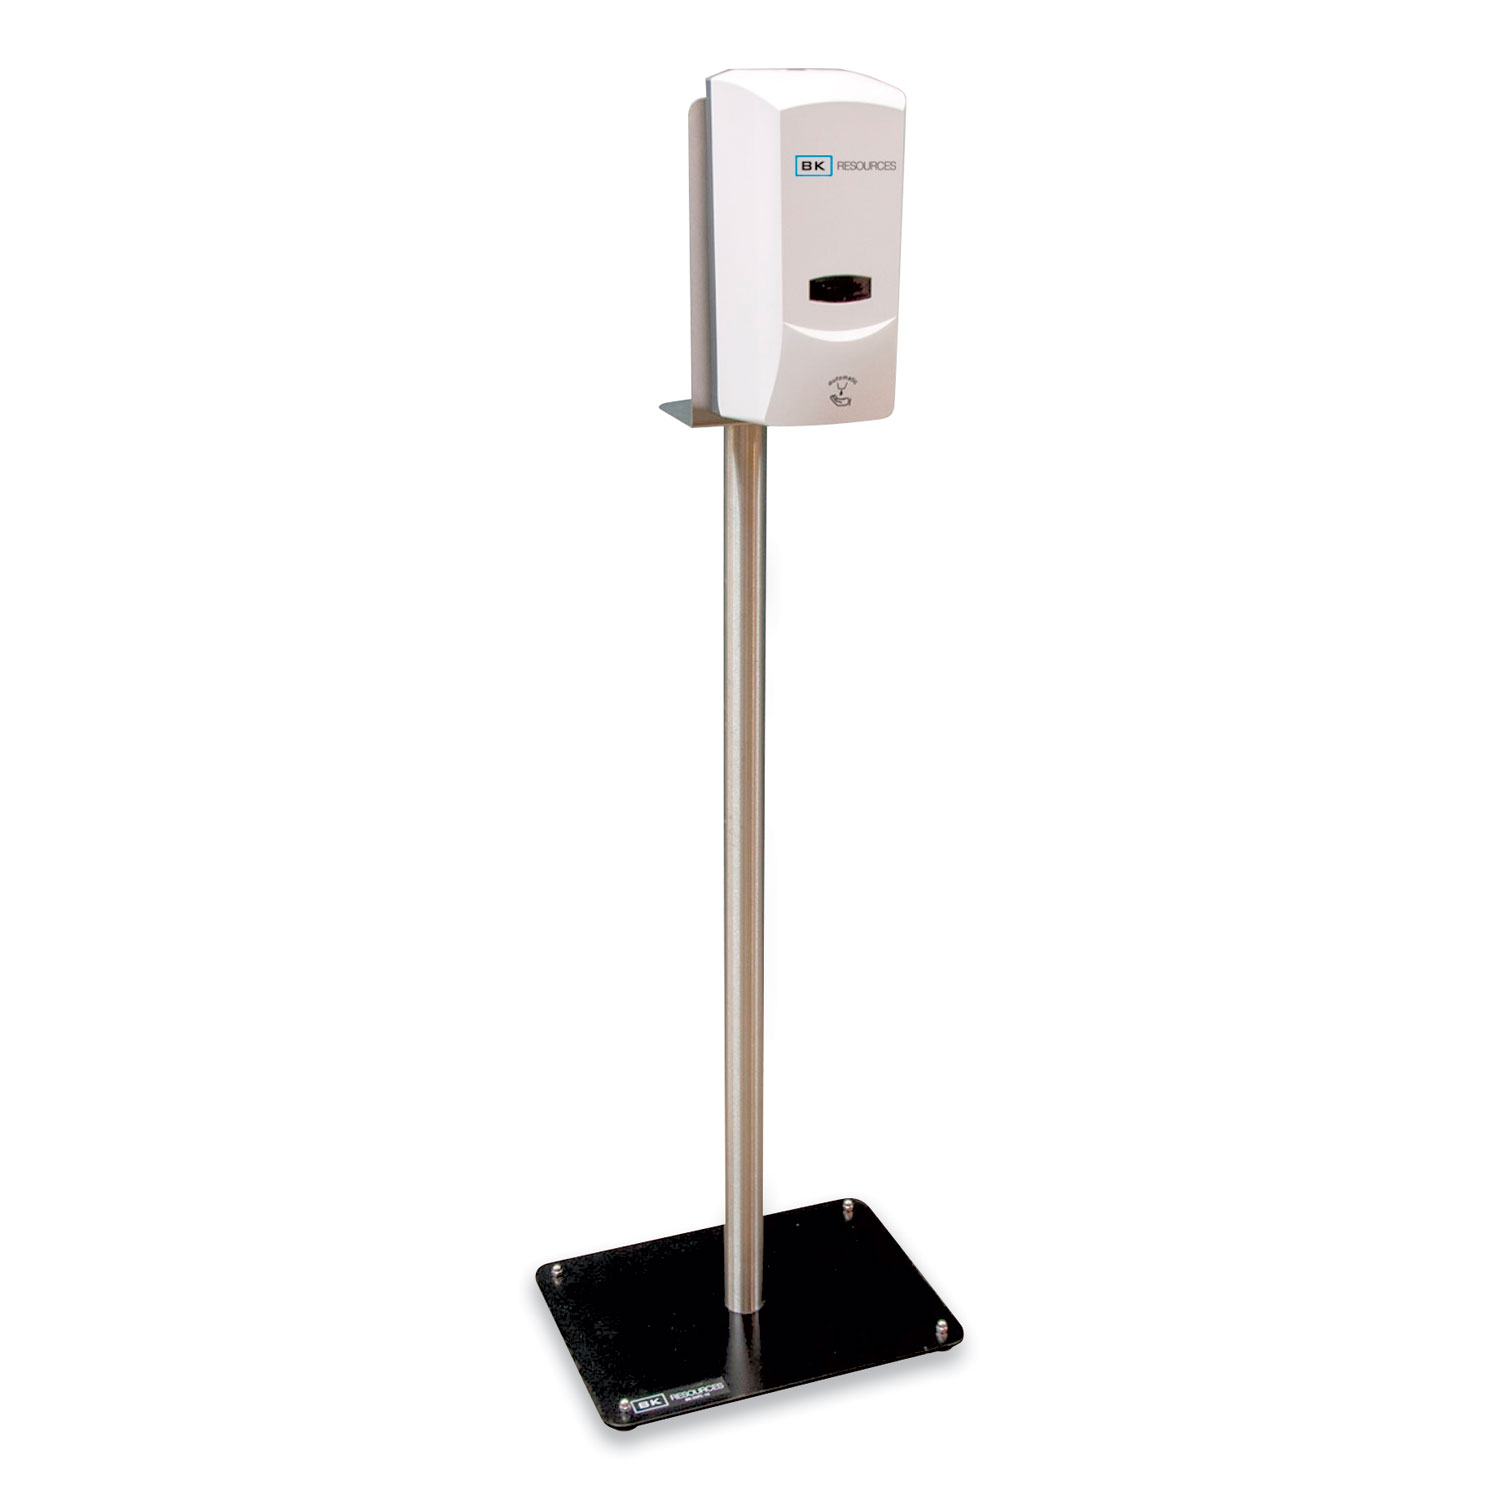 BK Resources Hand Sanitizer Stand with Hands Free Dispenser, 12 x 16 x 51, Silver/White